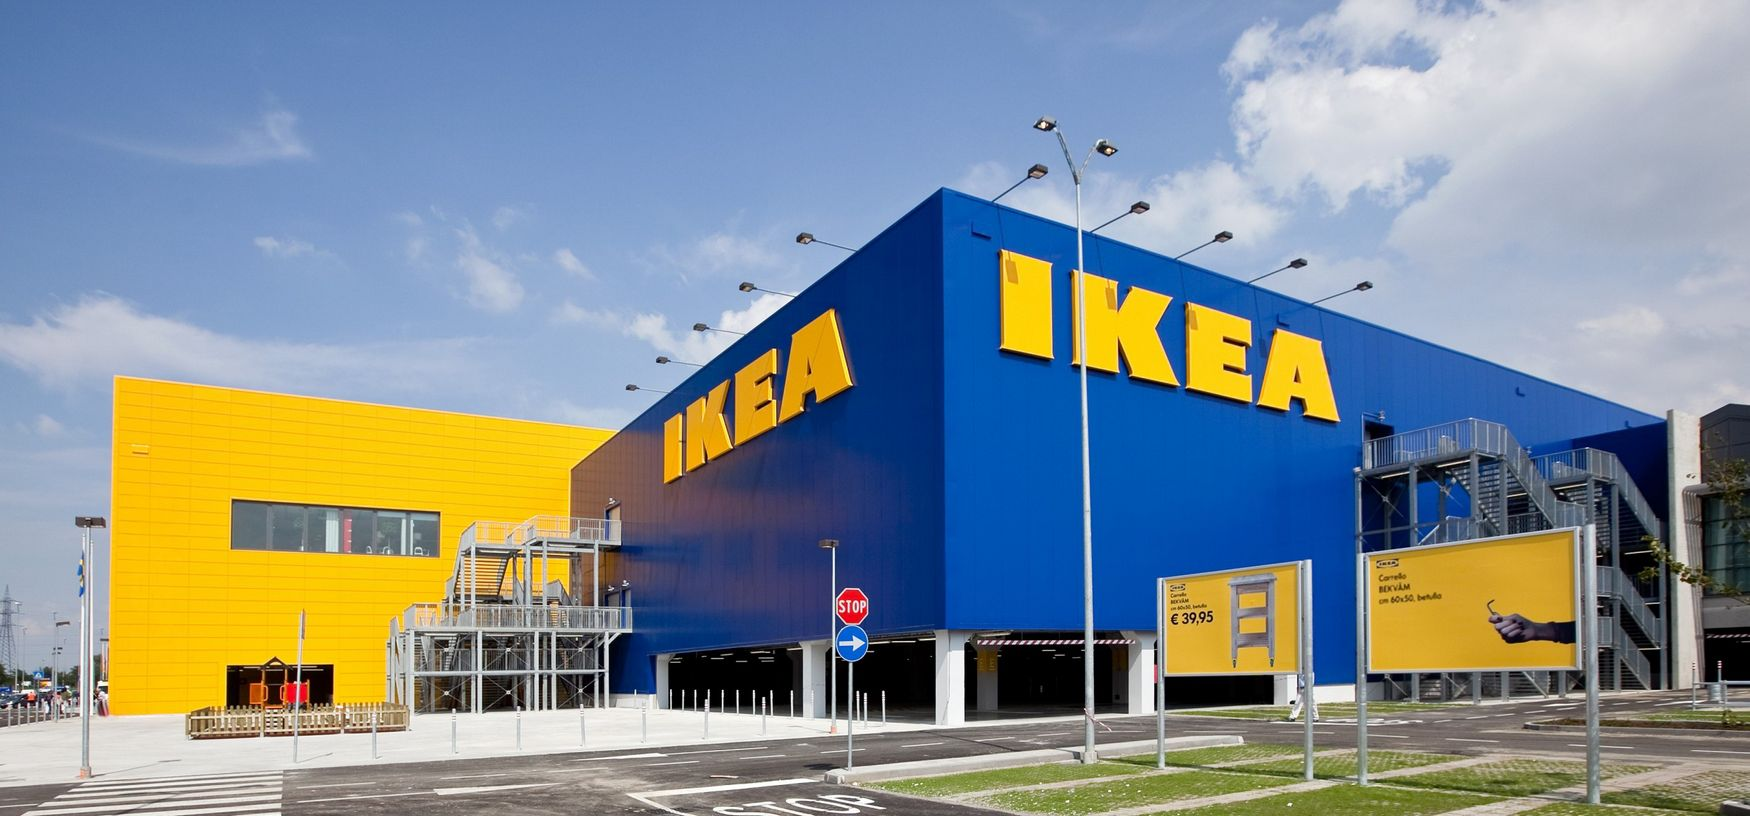 Ikea has invested in enough clean energy to power all of its operations